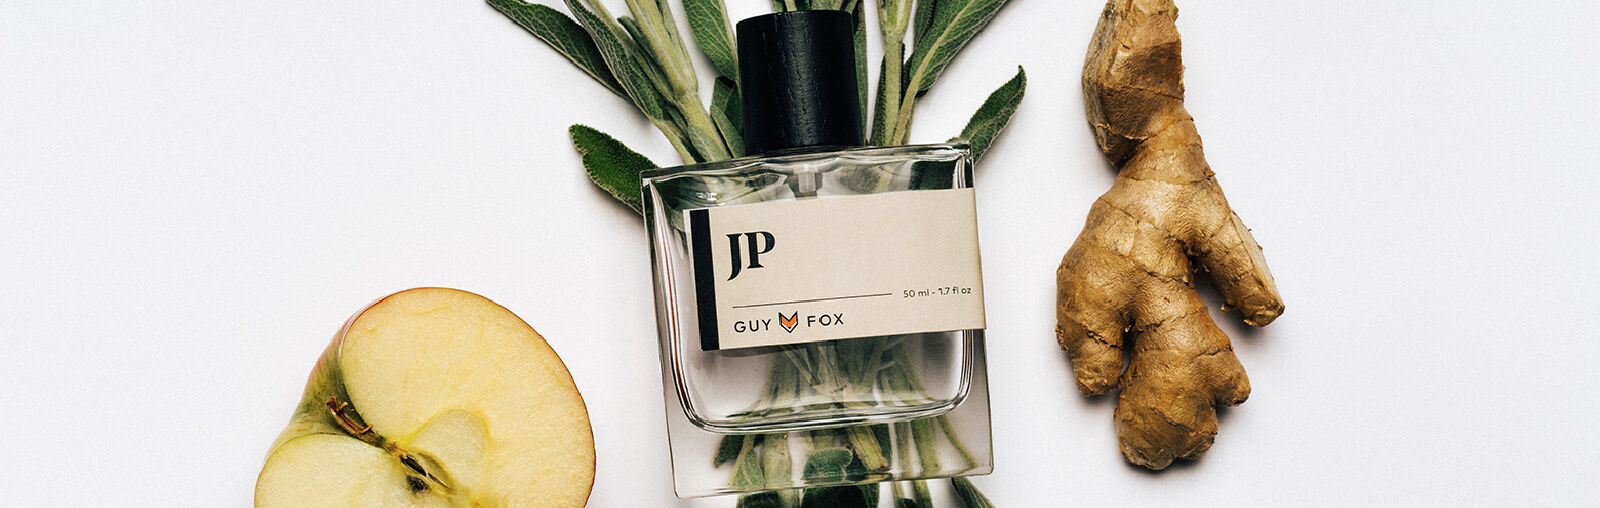 Guy Fox Cologne & Scented Candles available at Sportique.com